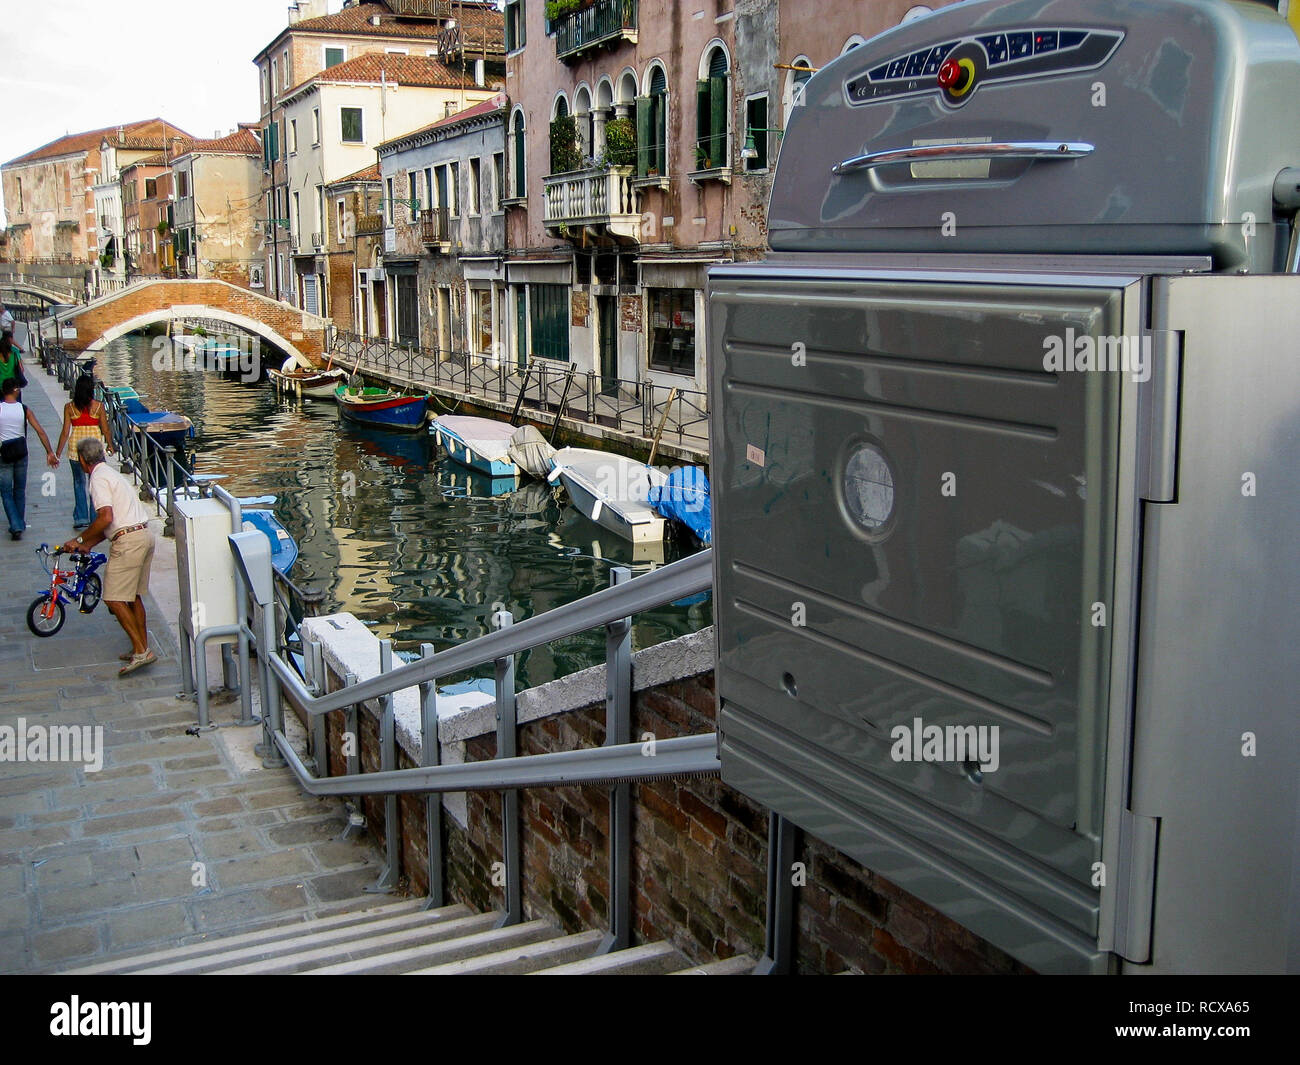 Accessibility equipments for disabled, Venice, Veneto, Italy Stock Photo